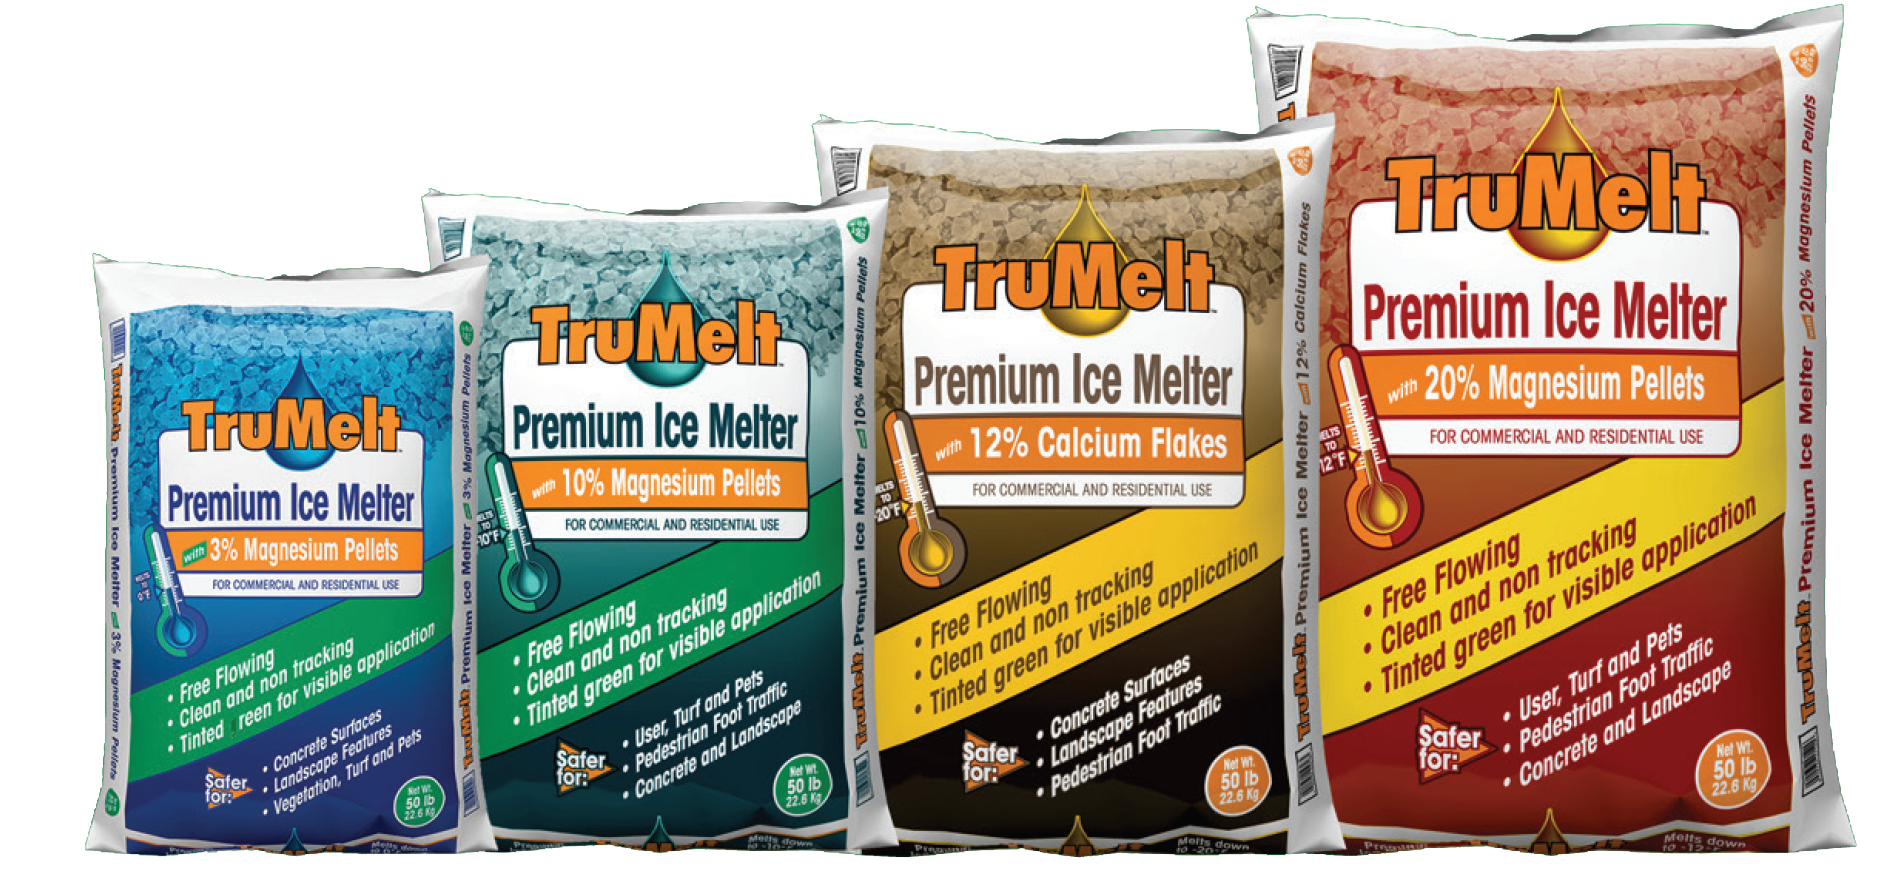 Top hardscape dealer in Harrisburg, PA for ice melt products